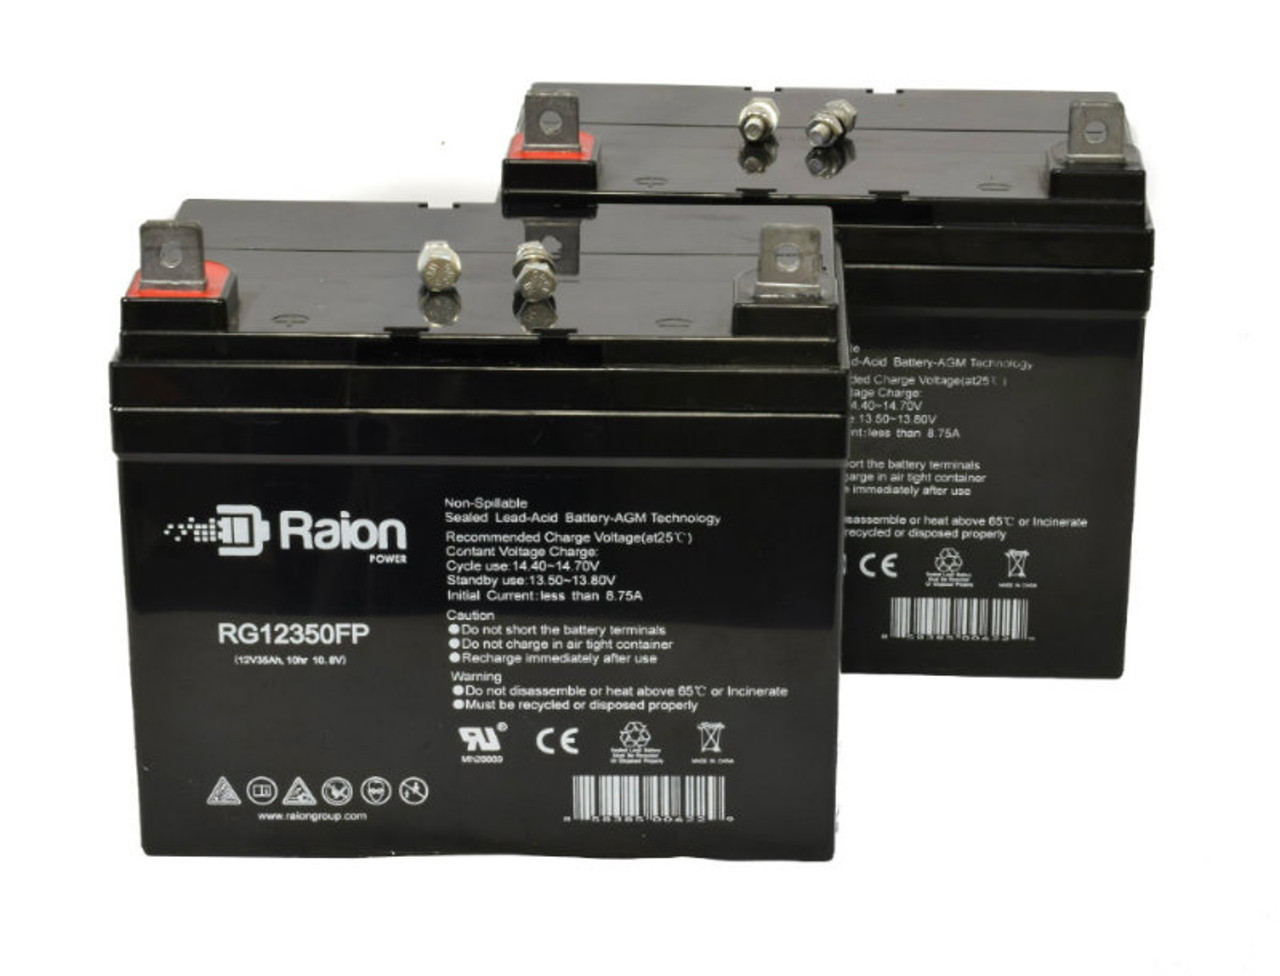 Raion Power RG12350FP Replacement Wheelchair Battery For Drive Medical Cirrus Plus EC (2 Pack)